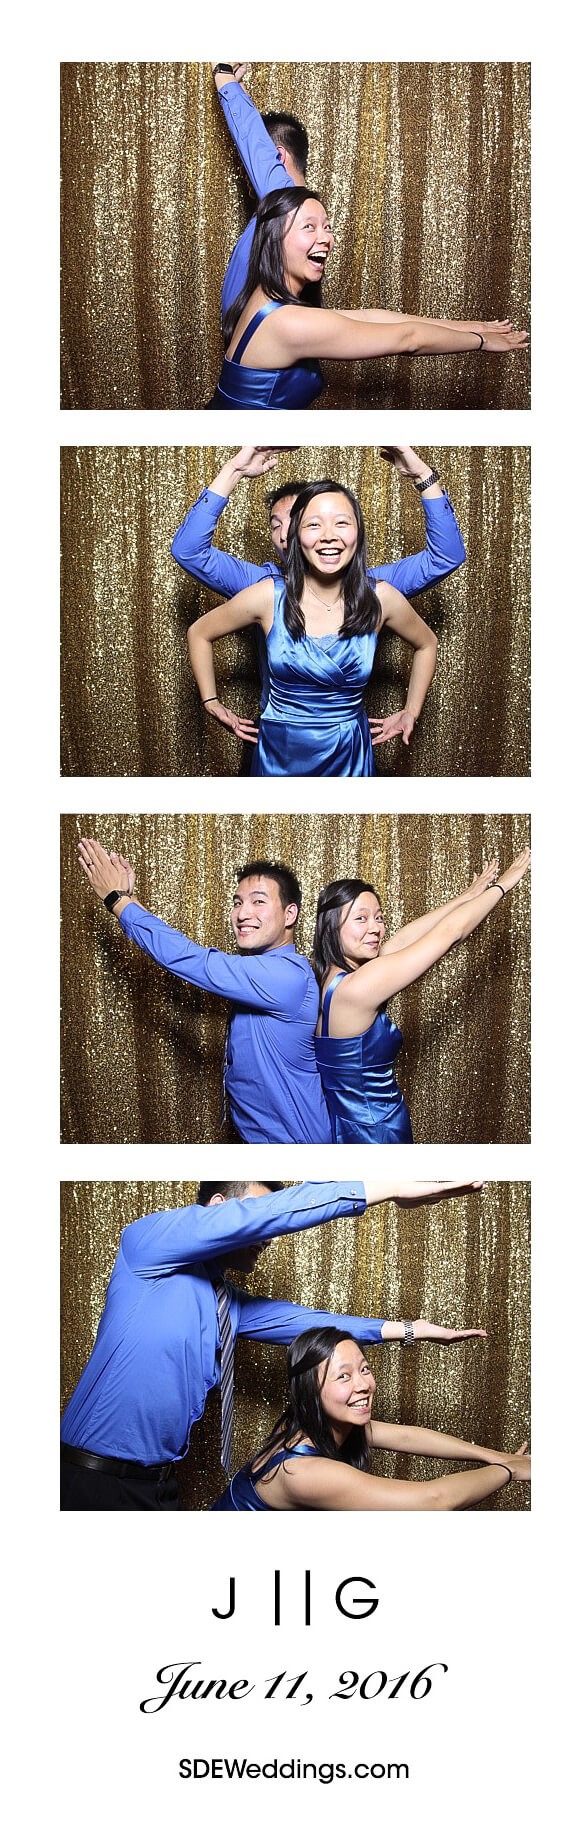 Toronto Four Seasons Hotel Wedding Photo Booth Rental 8